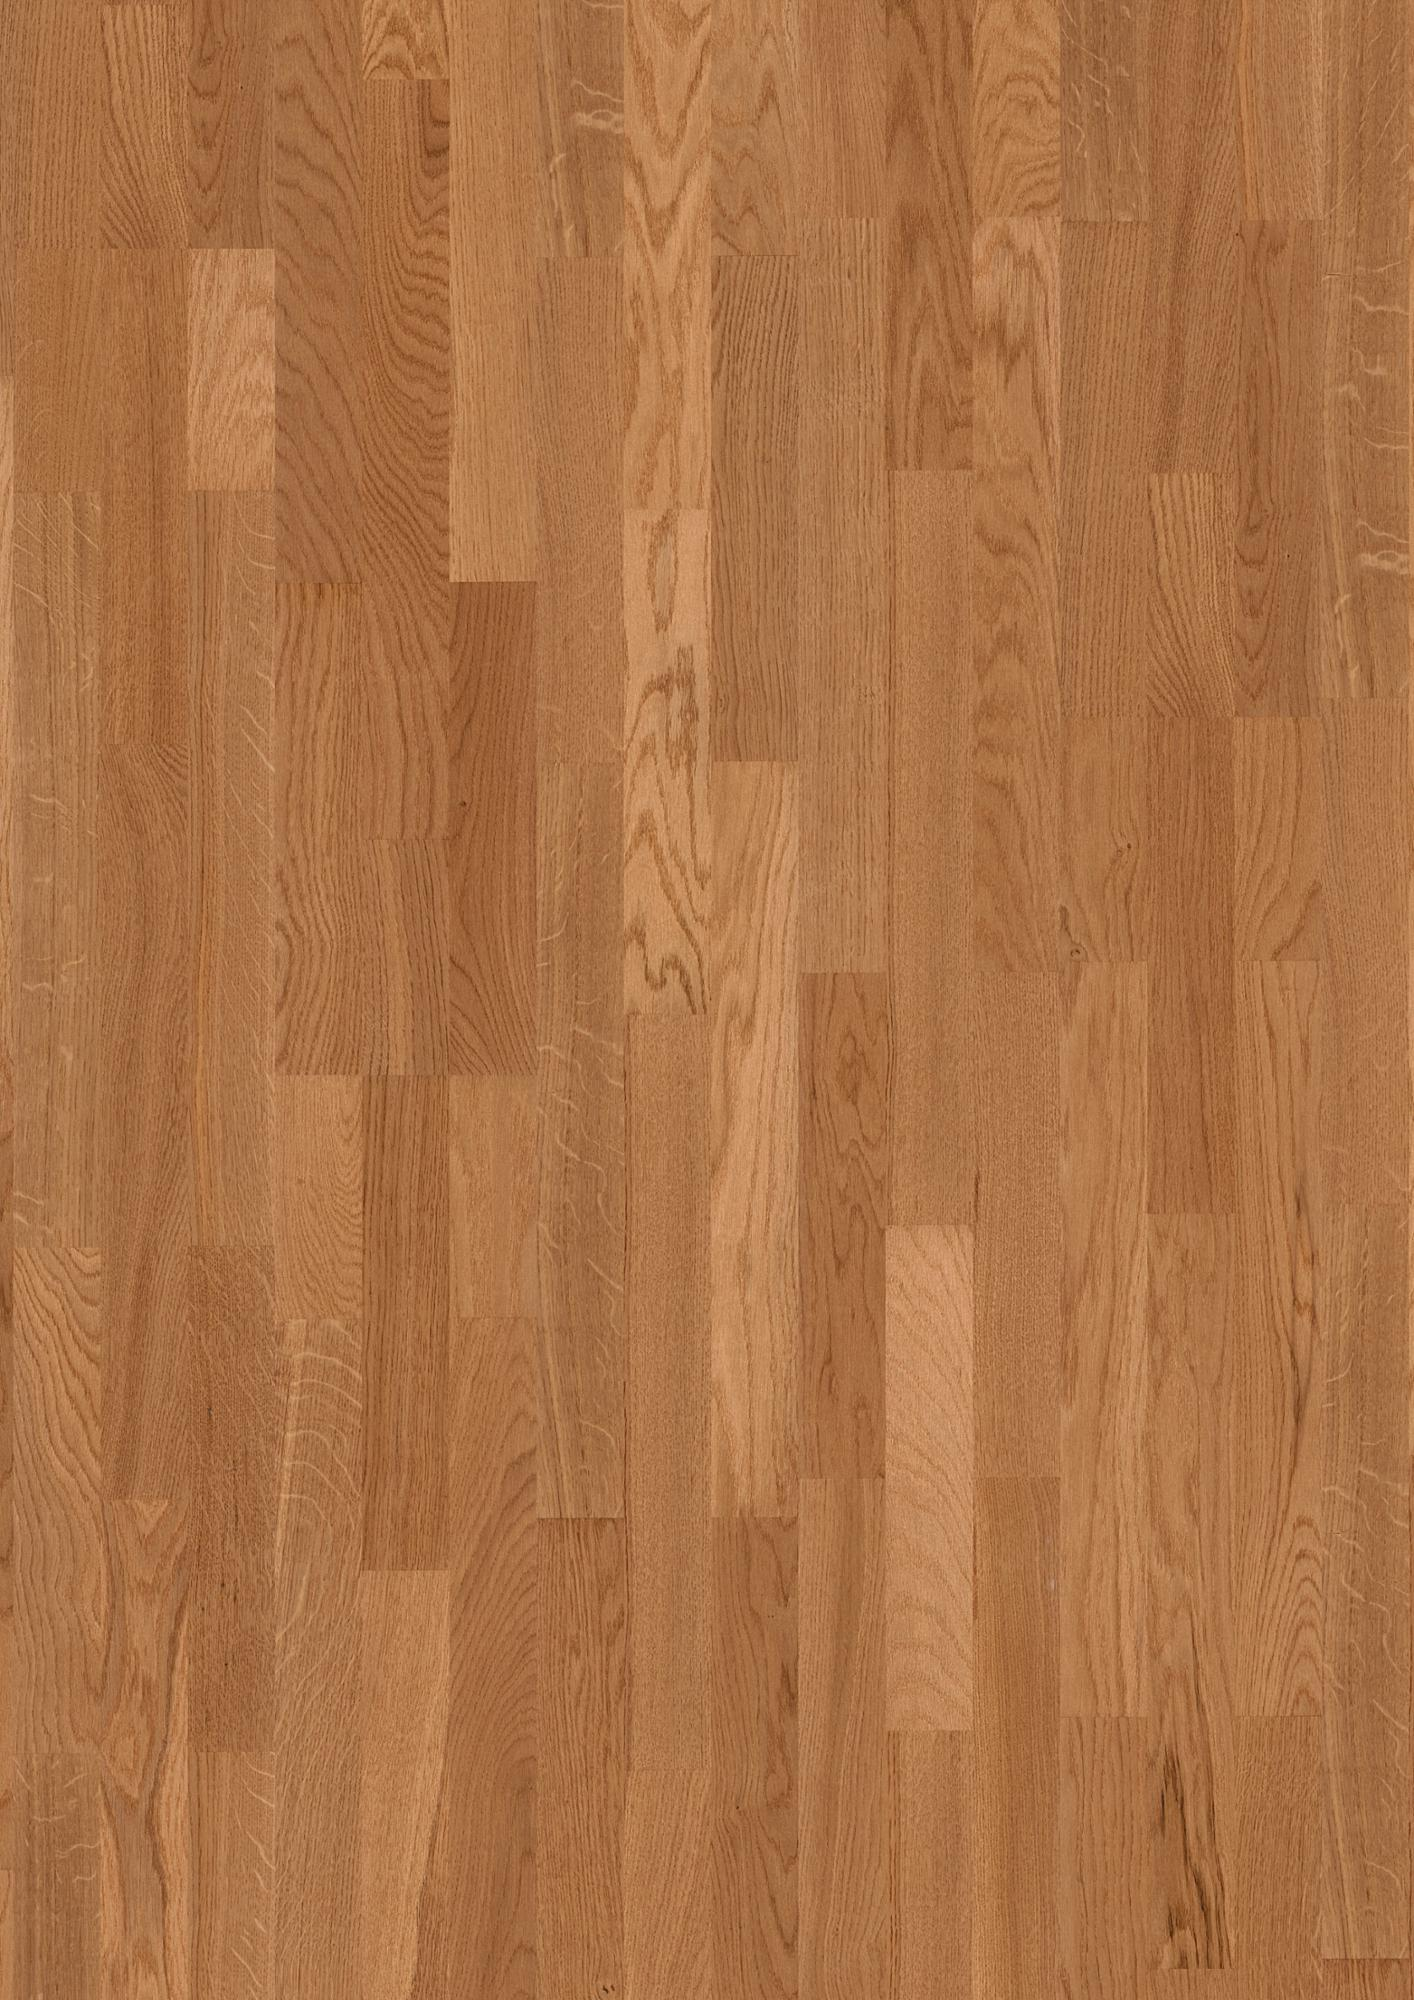 Oak American B, Live Satin lacquer, Unbrushed, Square edged, Longstrip 3-Strip, 33/64x8 15/32x86 39/64inch